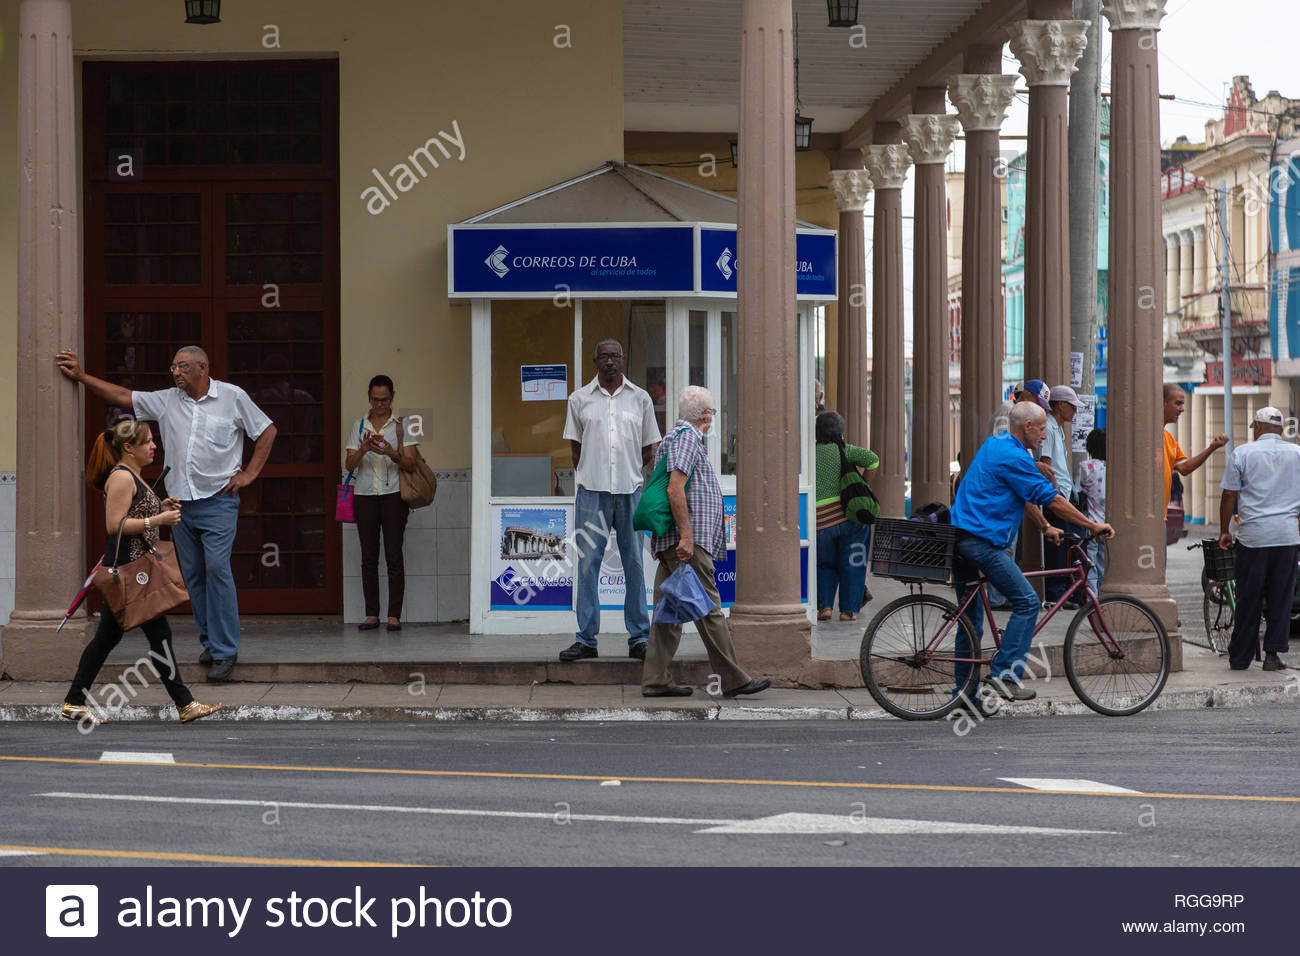 Street scene somewhere in Cuba of people hanging around or on their way. - Stock Image